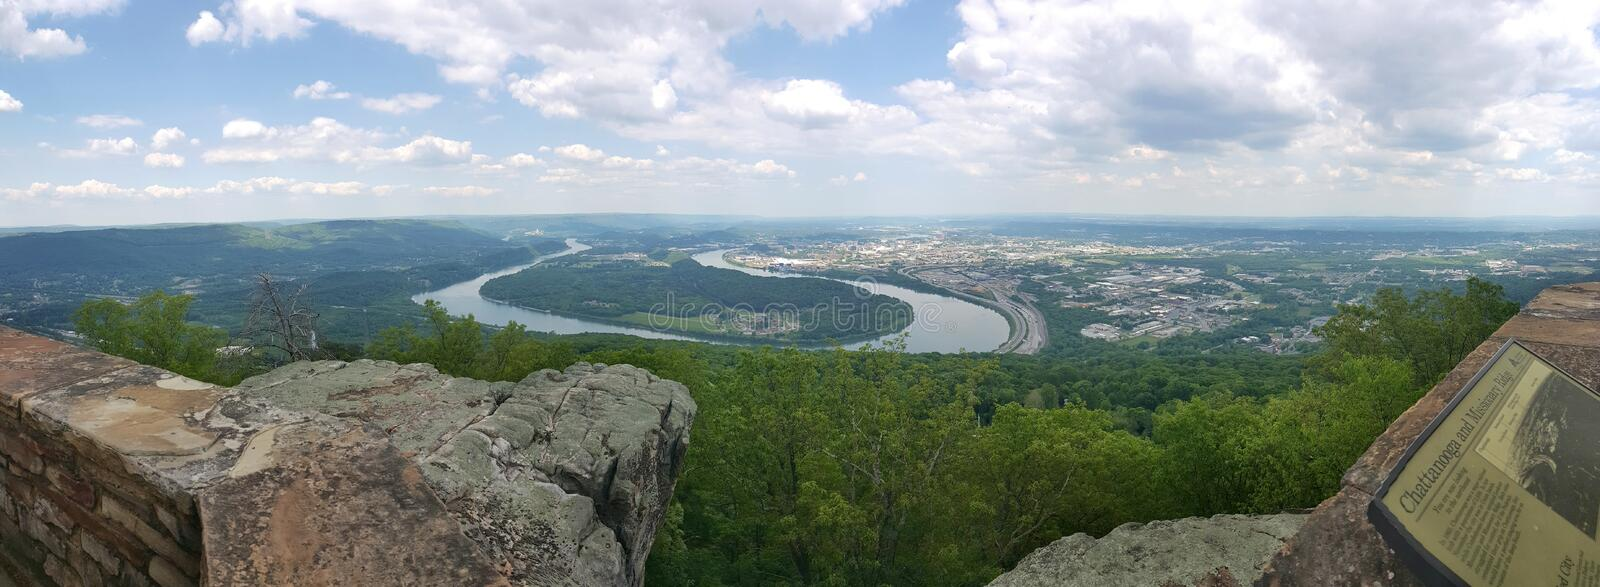 Chattanooga, Tennessee stock image